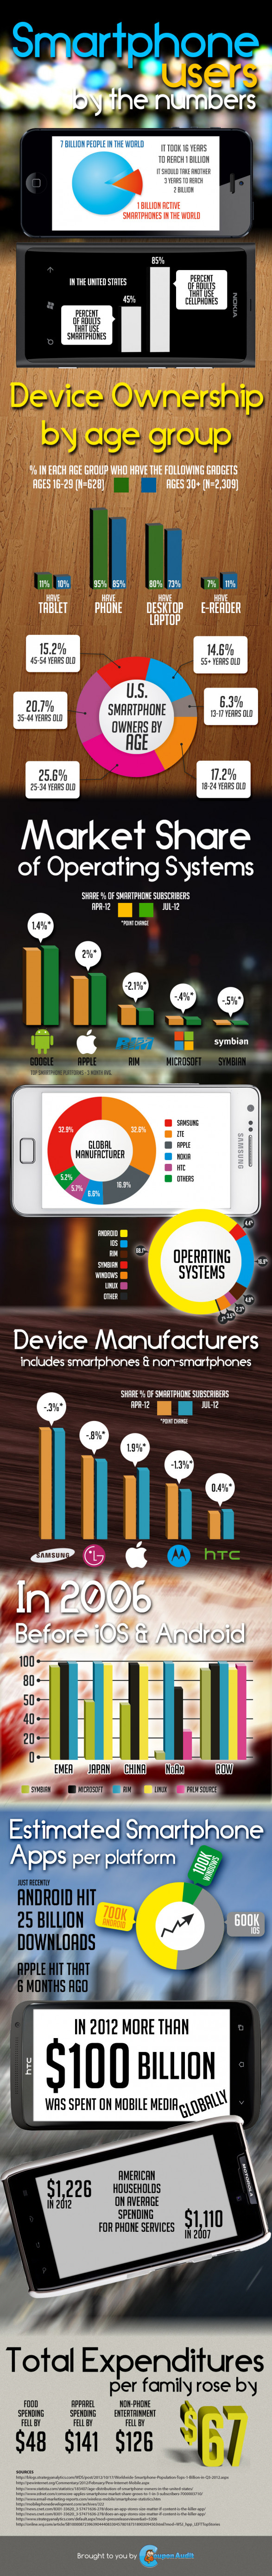 Smart Phone Users, By The Numbers